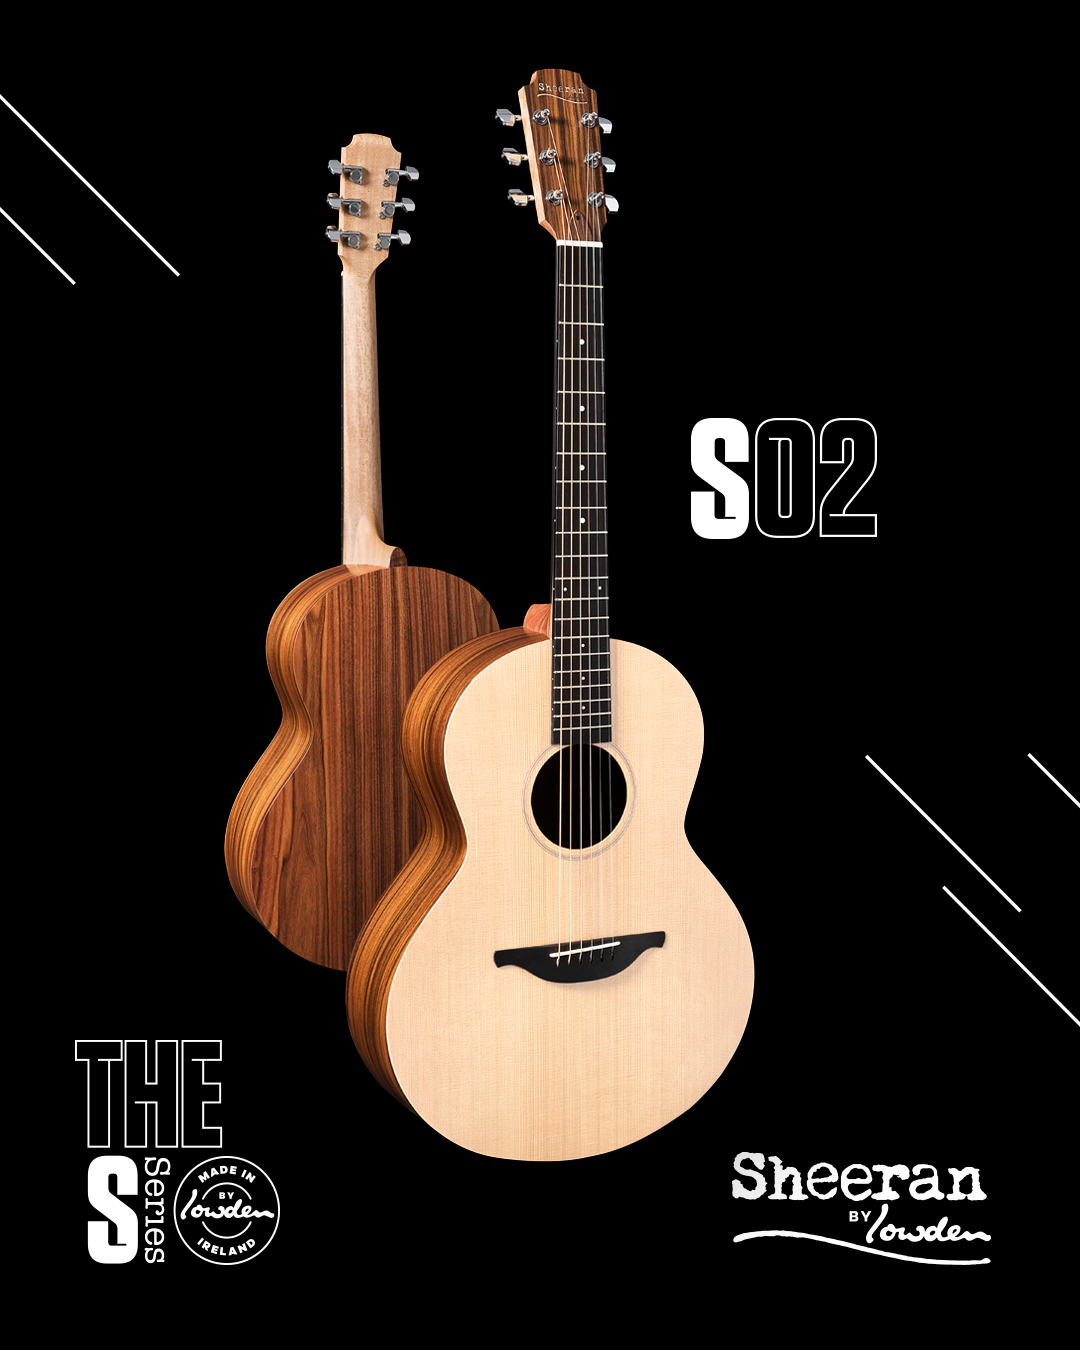 Sheeran by Lowden S-02 Sitka/Rosewood Guitar w/ LR Baggs Pickup (PRE ORDER)